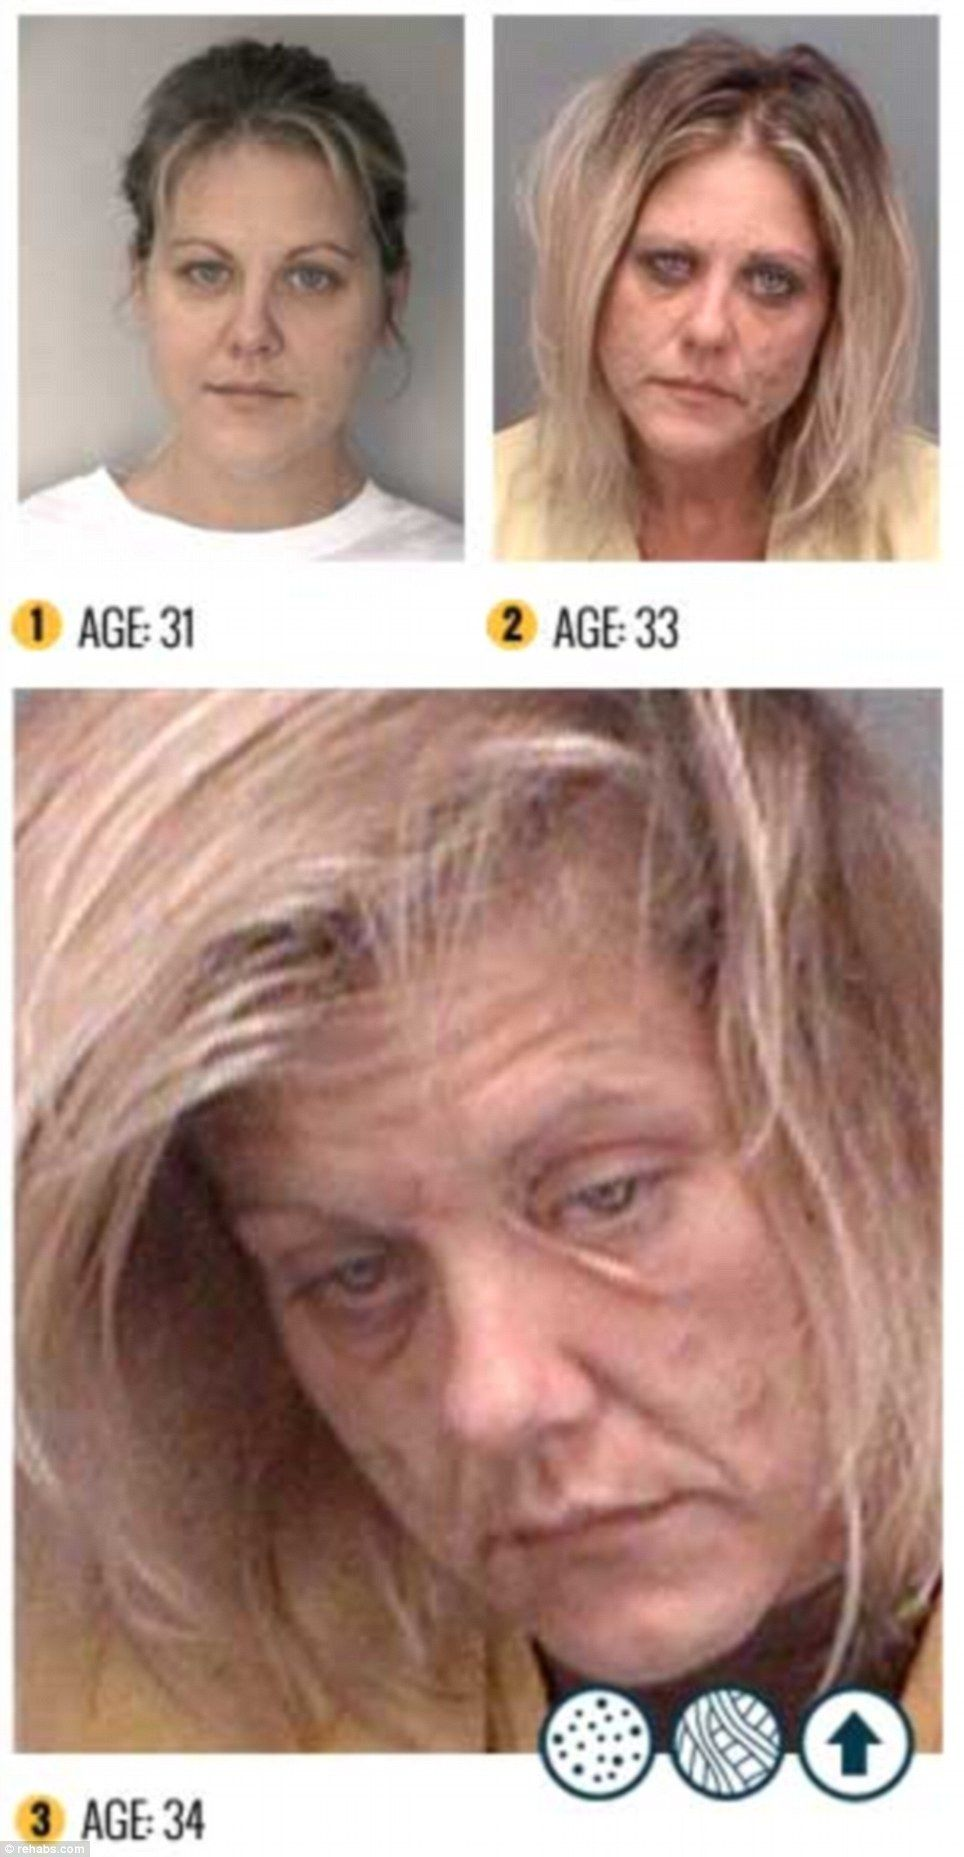 the horror of meth: before-and-after pictures reveal shocking